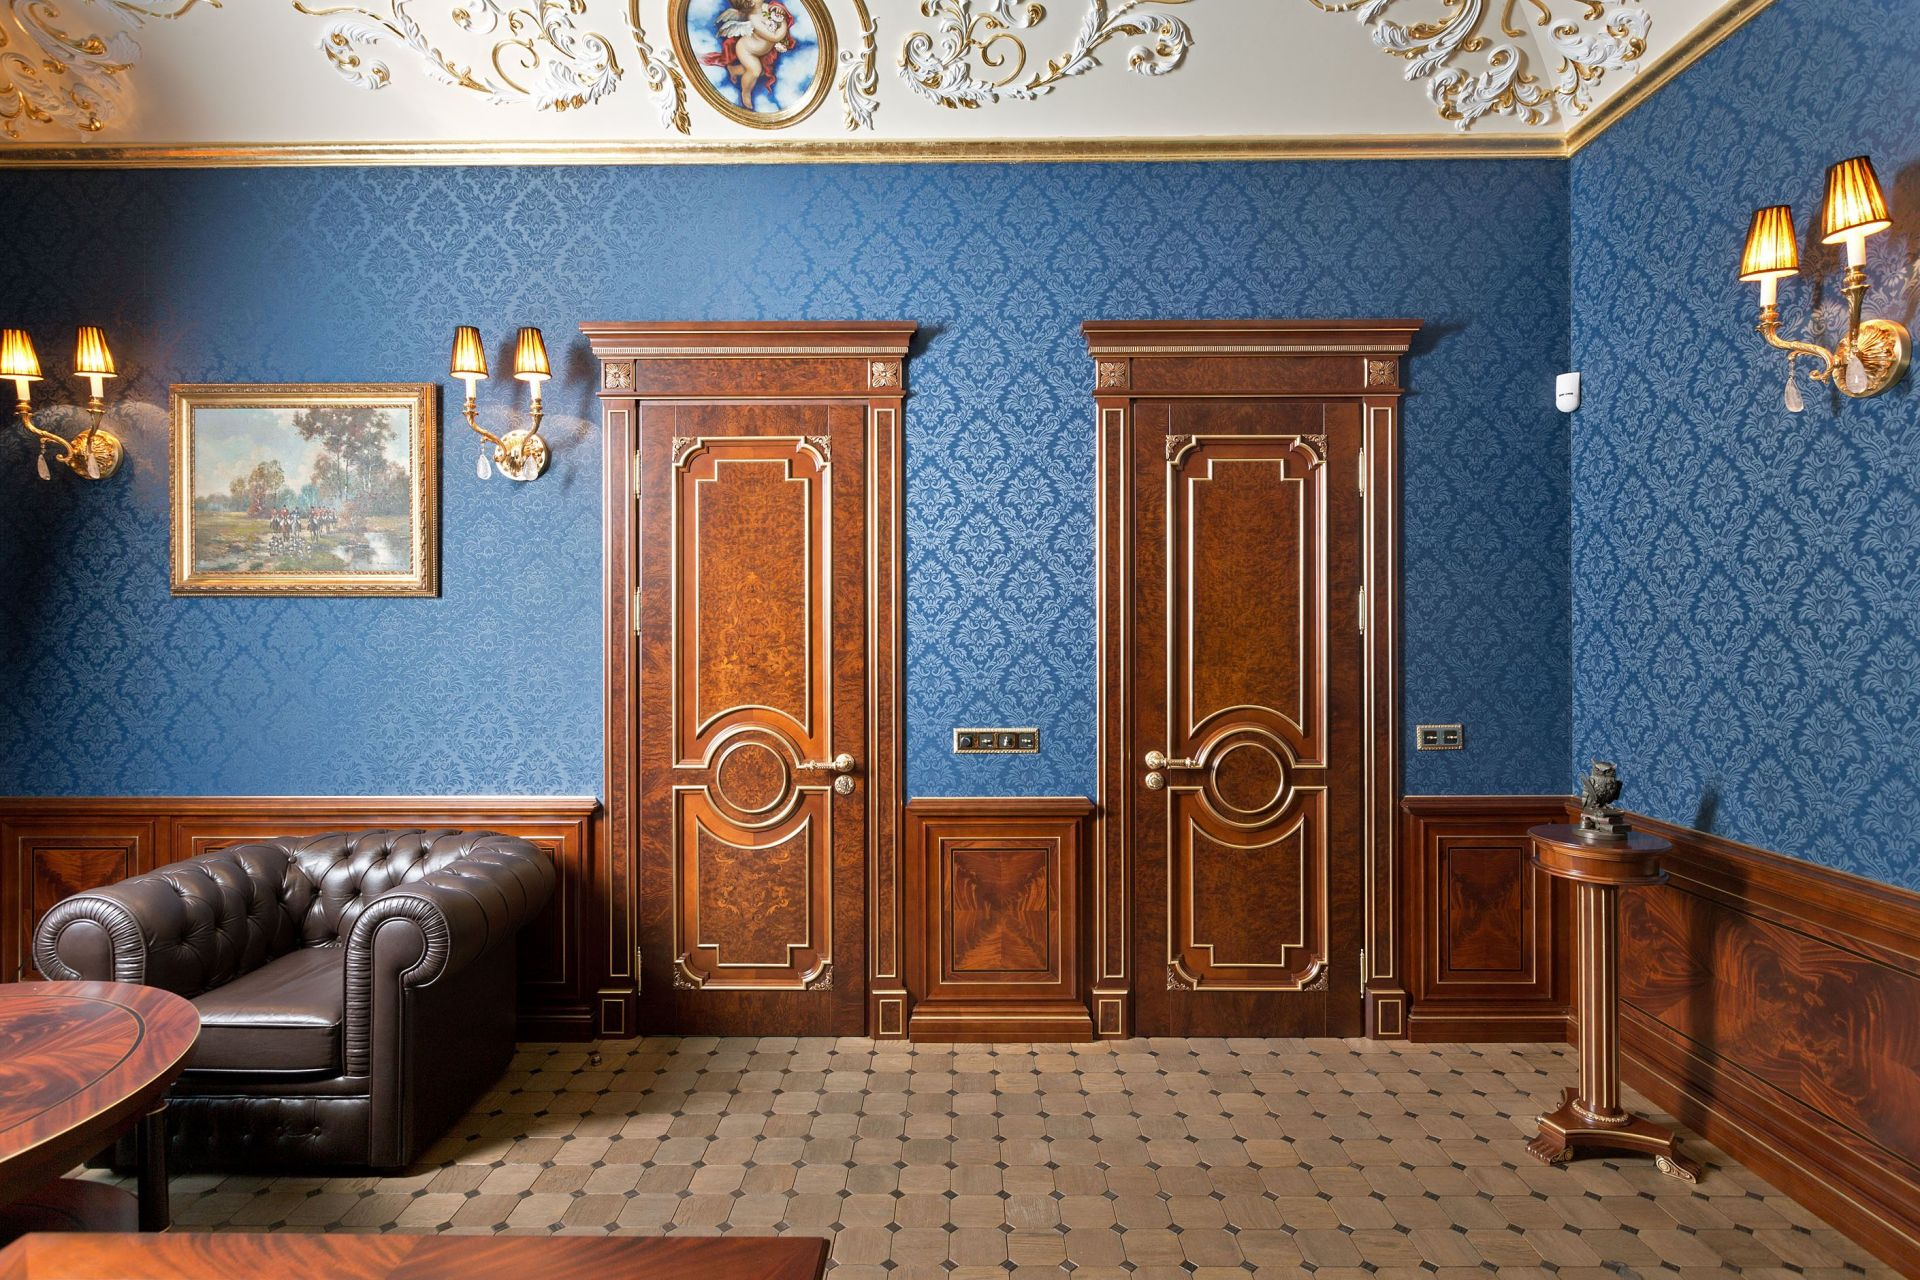 Study interior with baroque elements